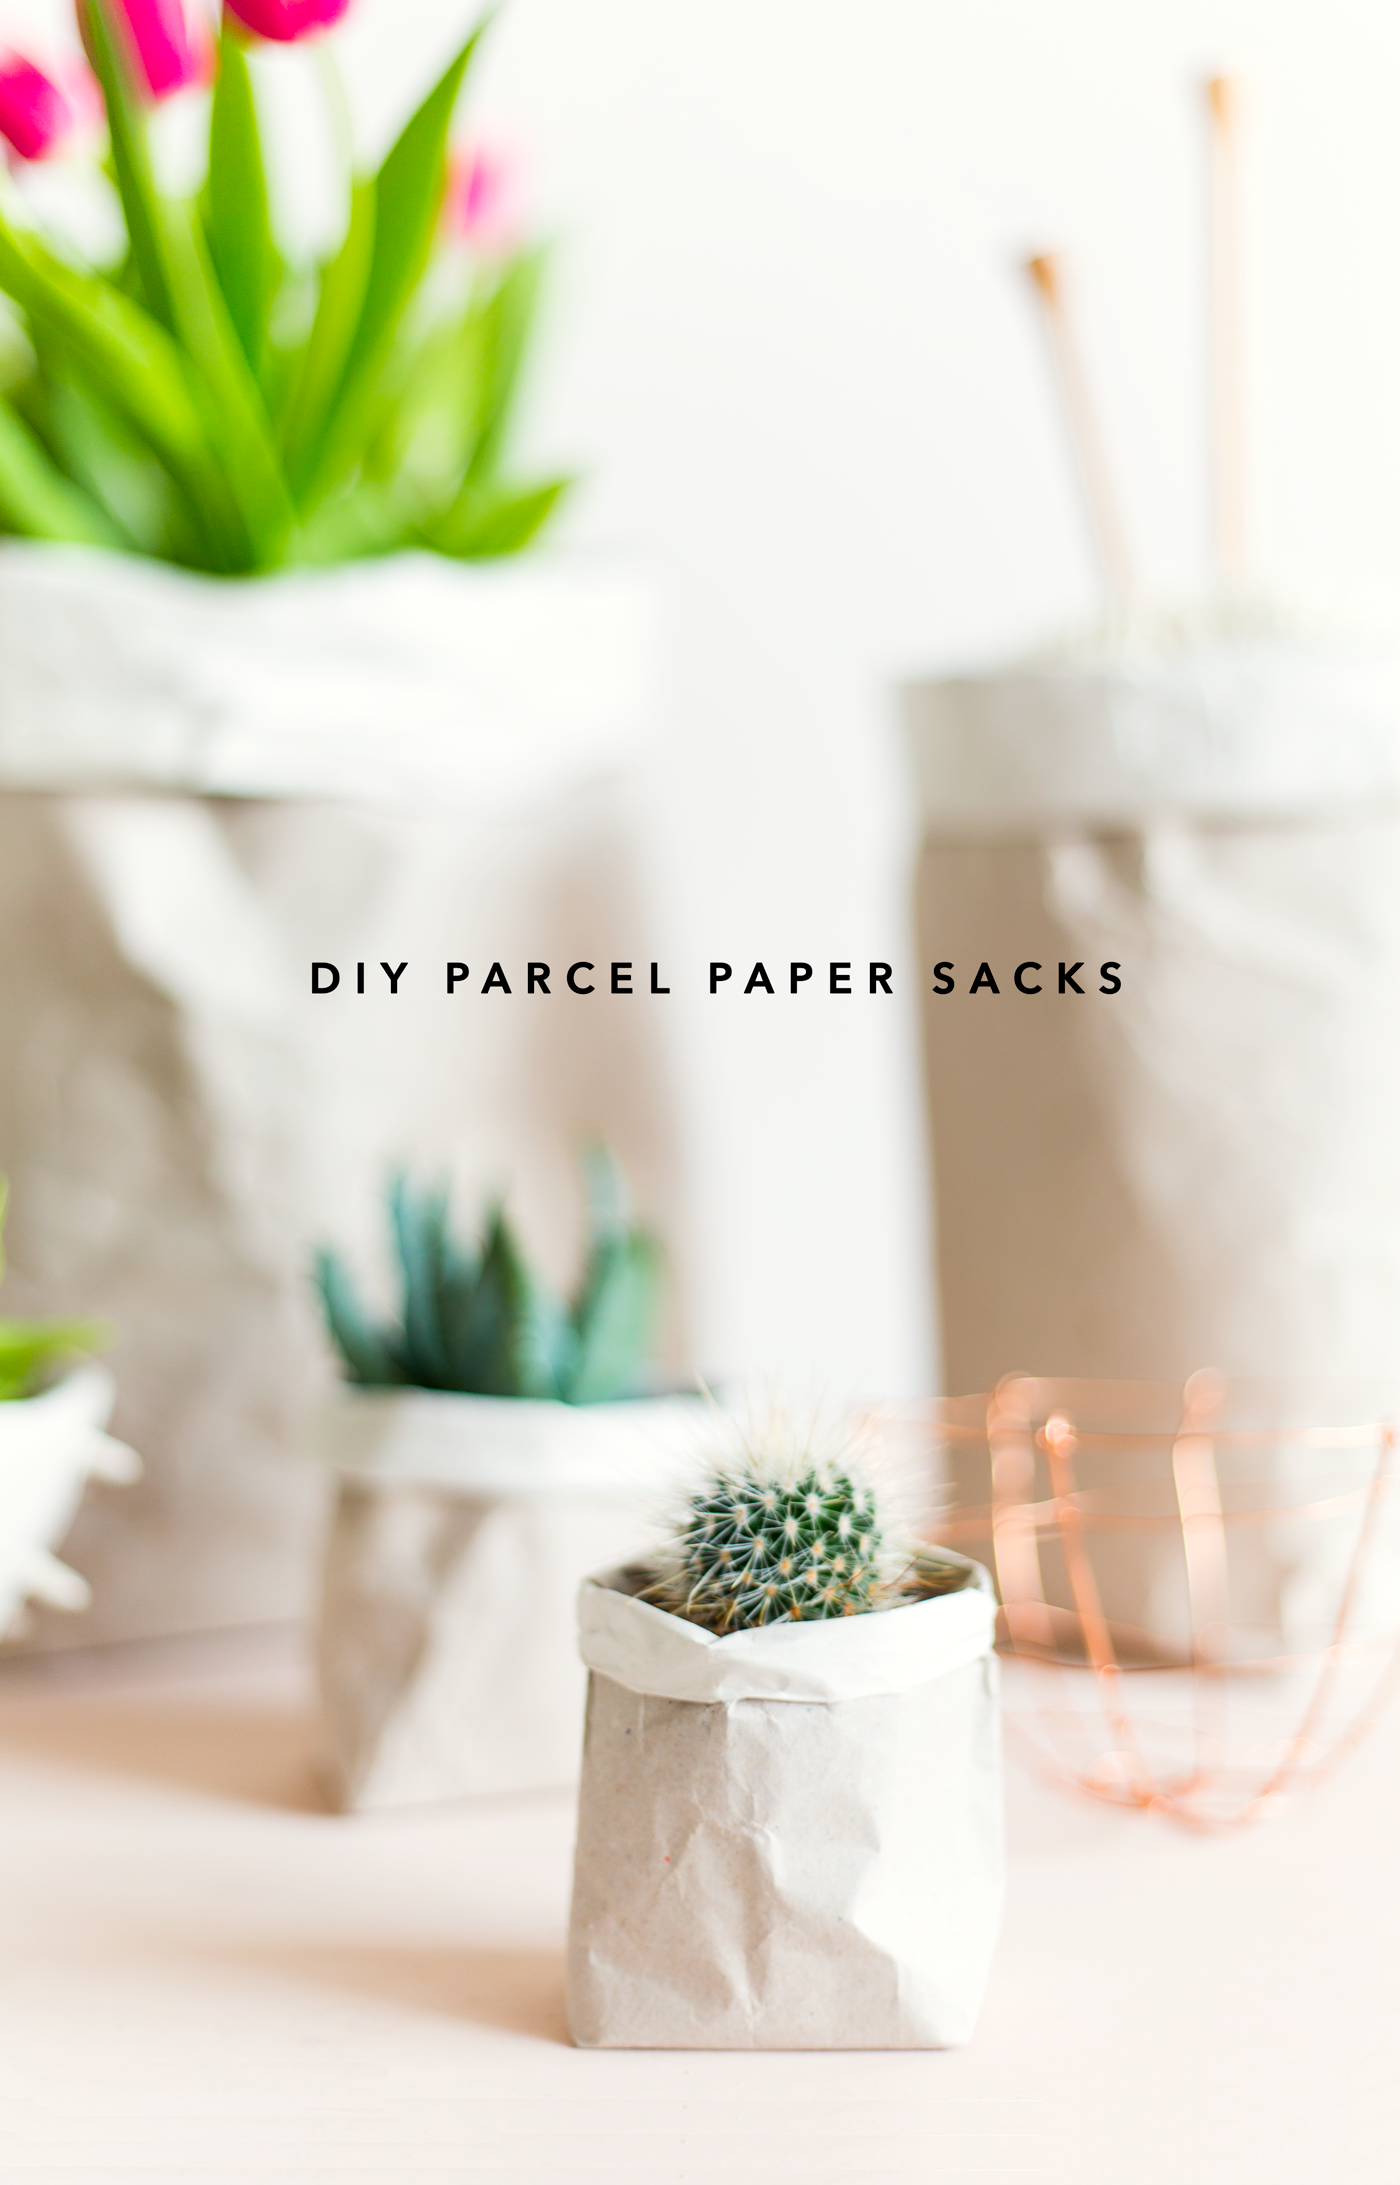 Diy packing paper sack planters vases fall for diy diy packing paper sack planters vases floridaeventfo Gallery